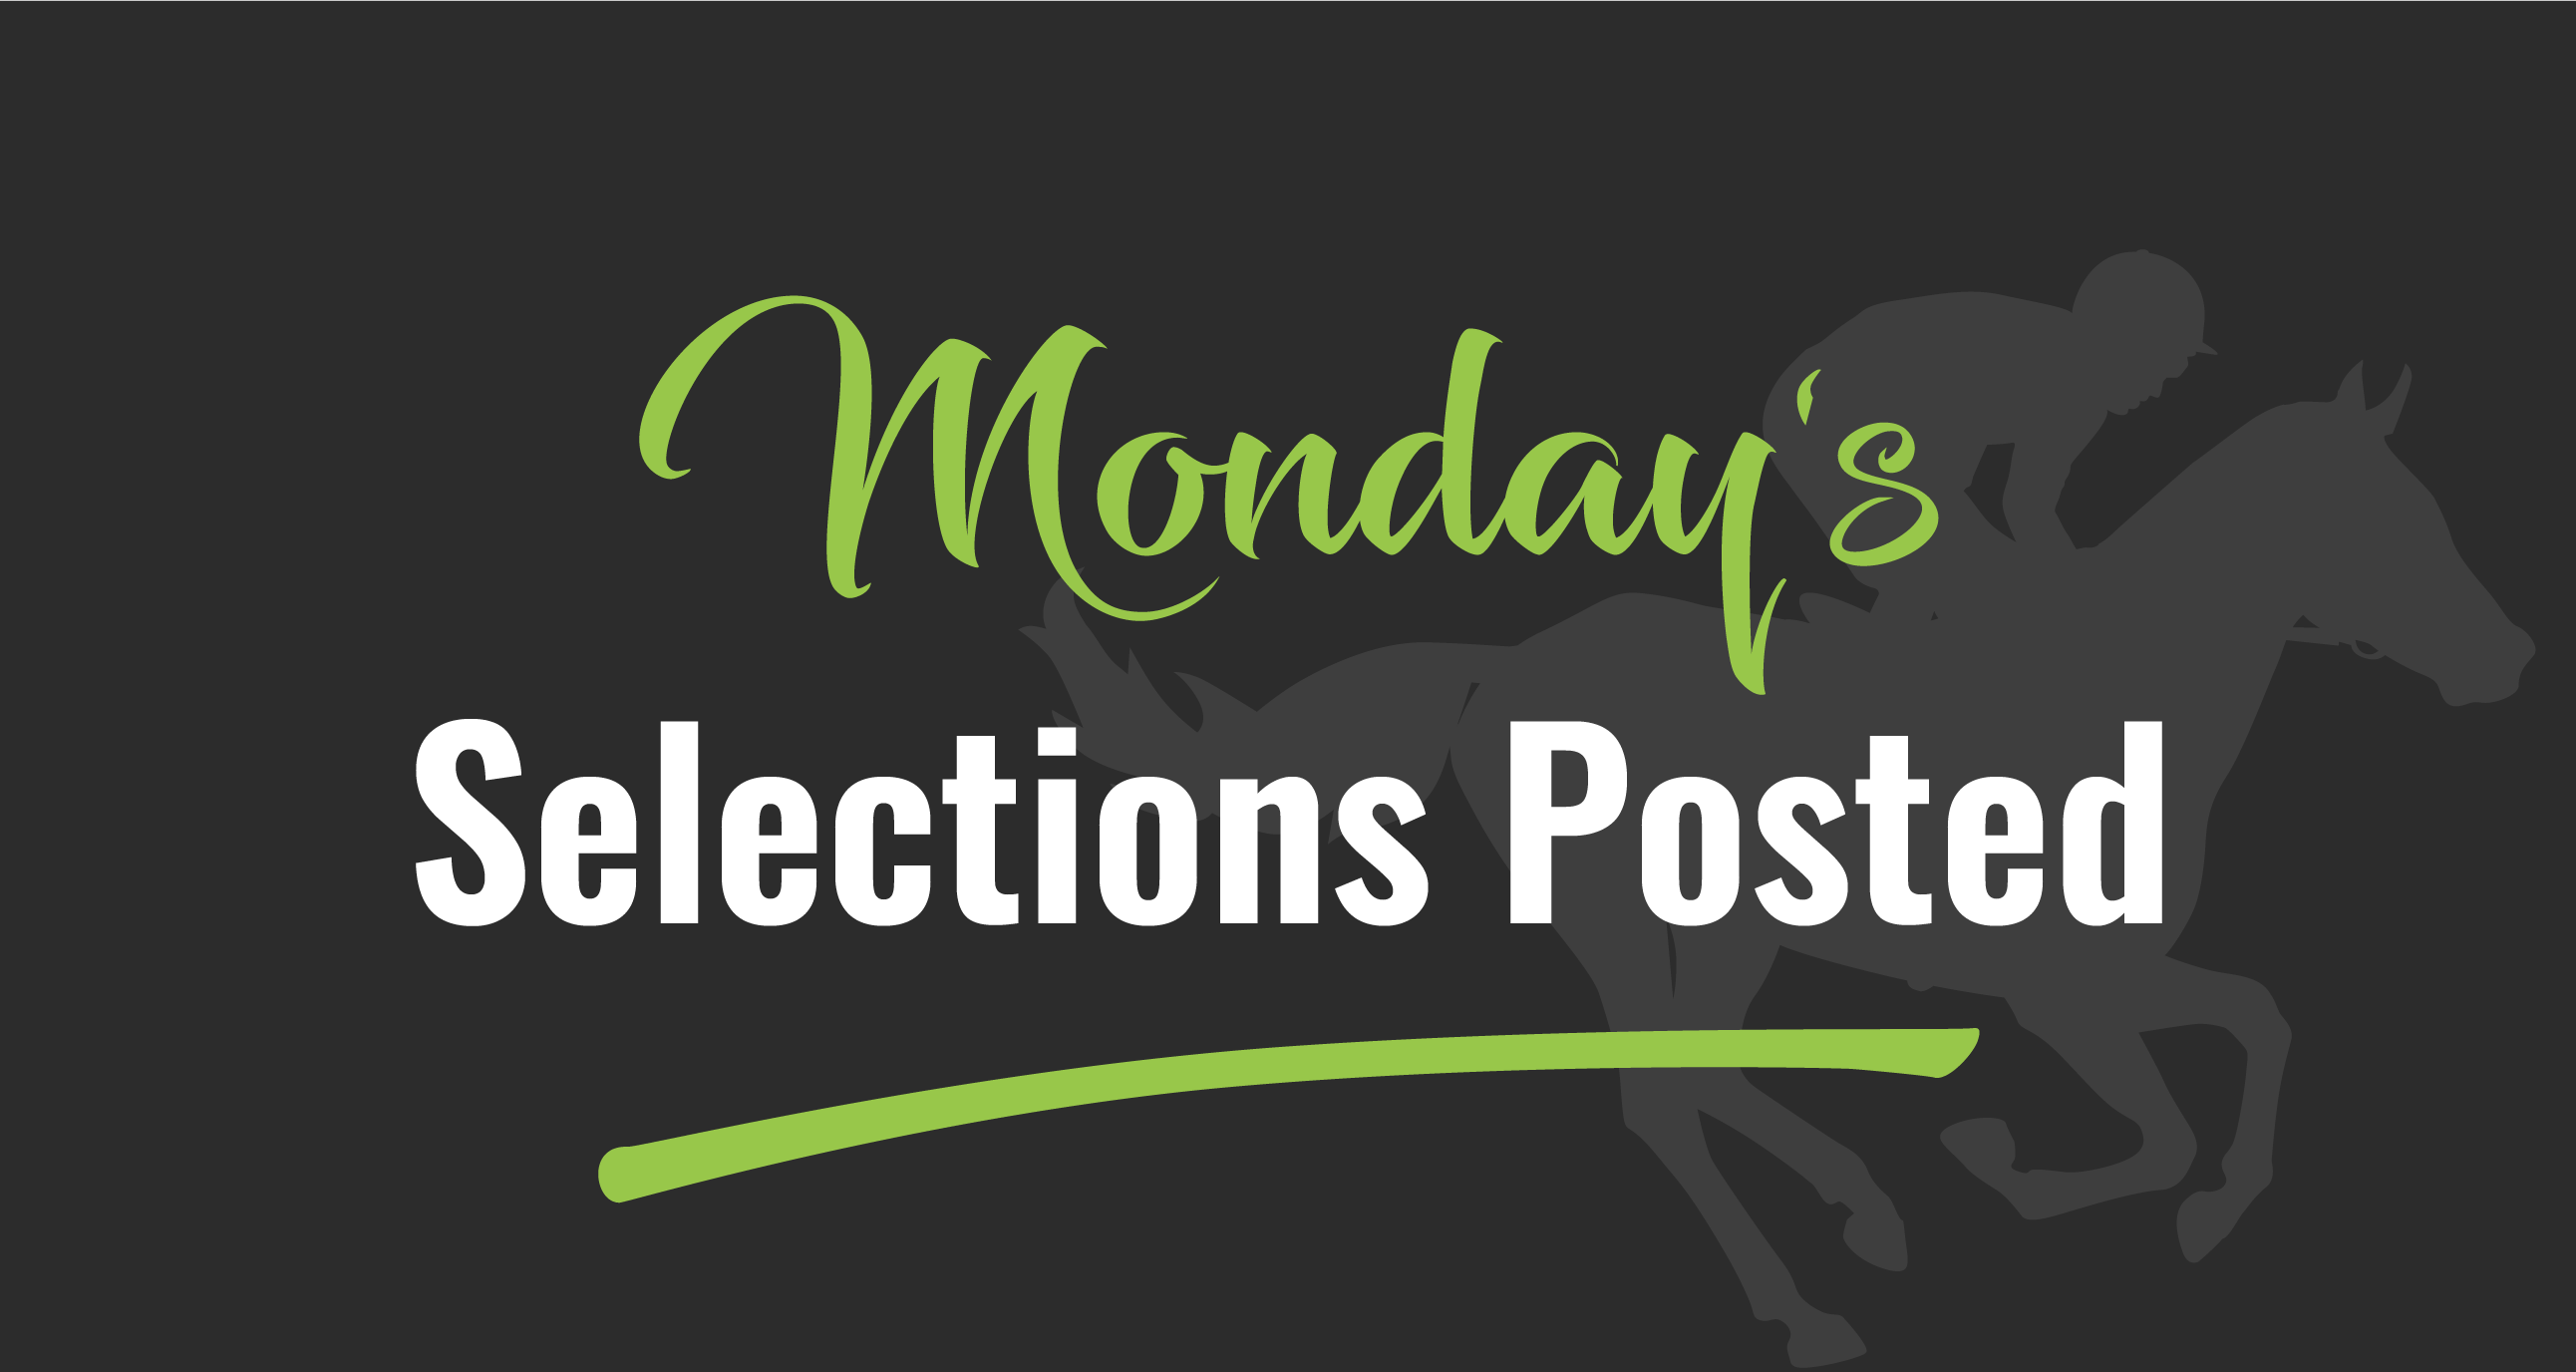 Selections for Monday 24 February 2020